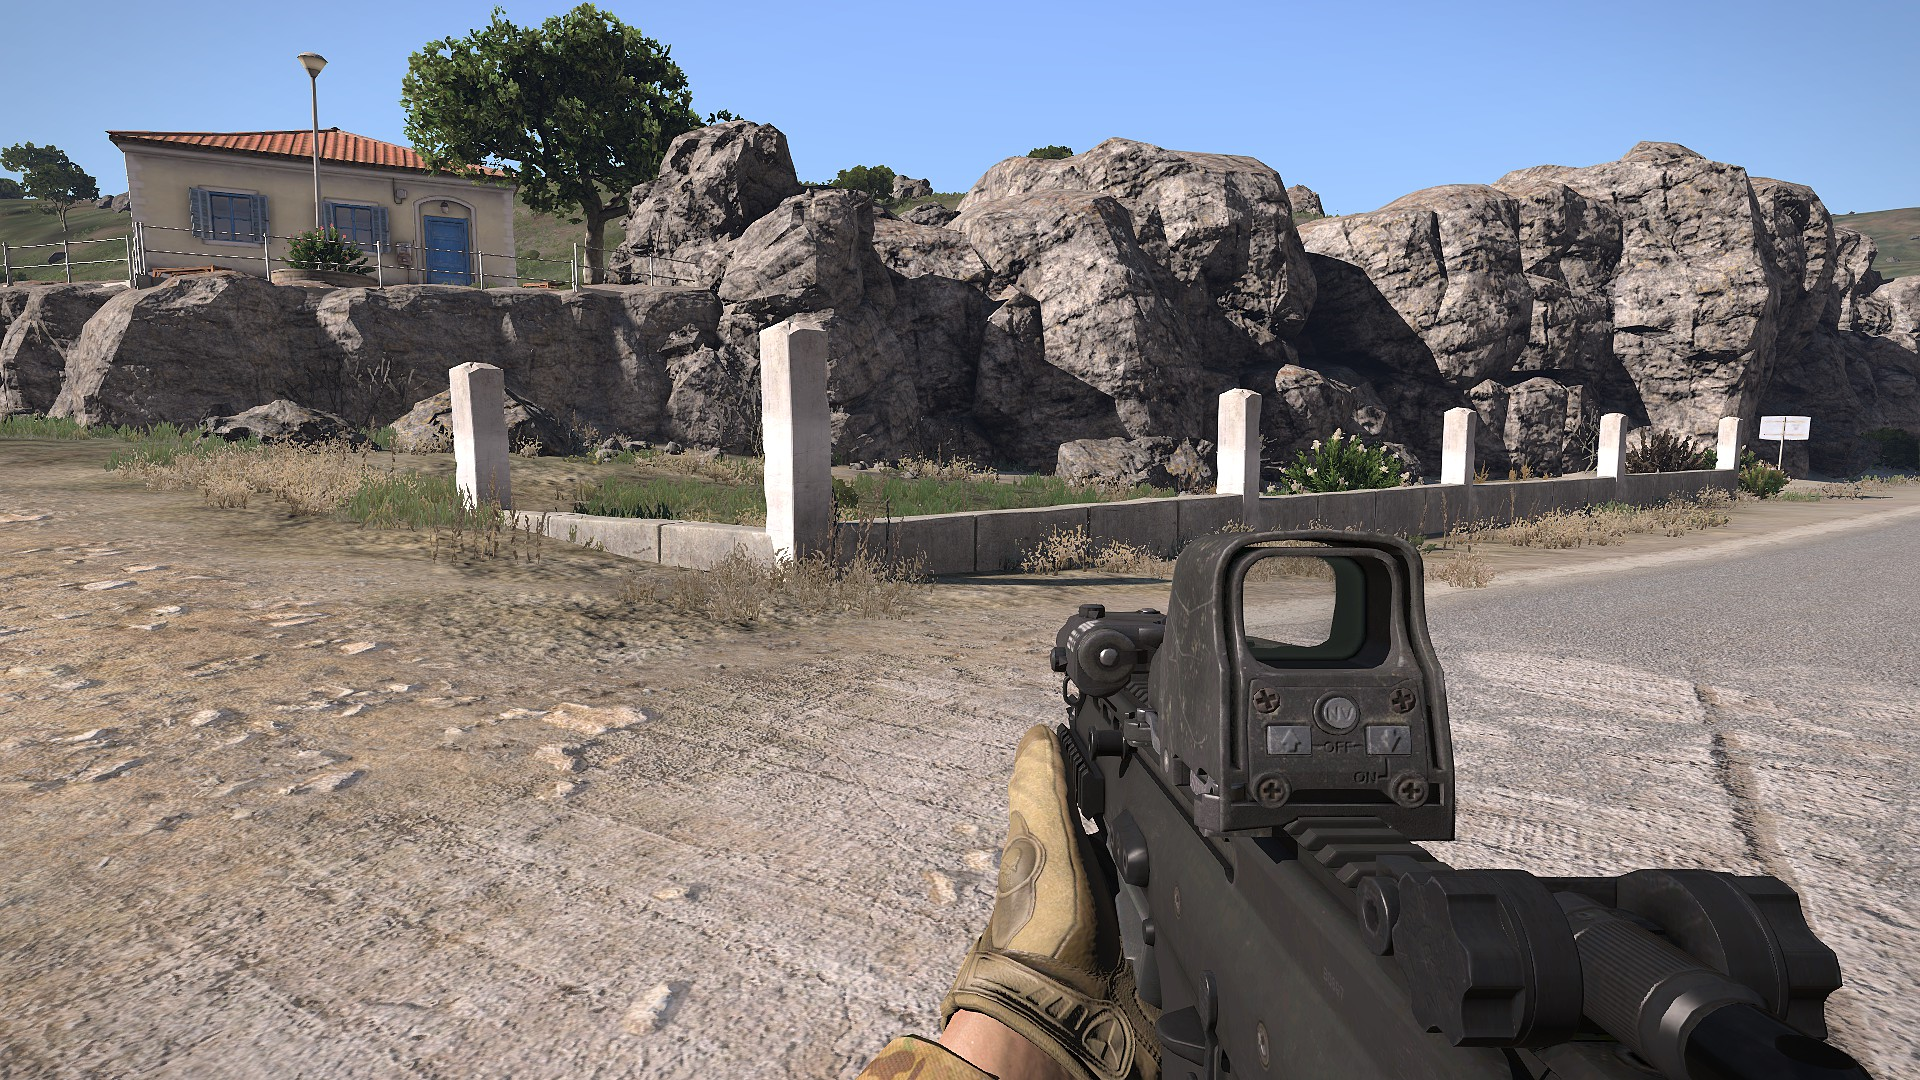 Design mastery weapons - Page 10 - ARMA 3 - ADDONS & MODS